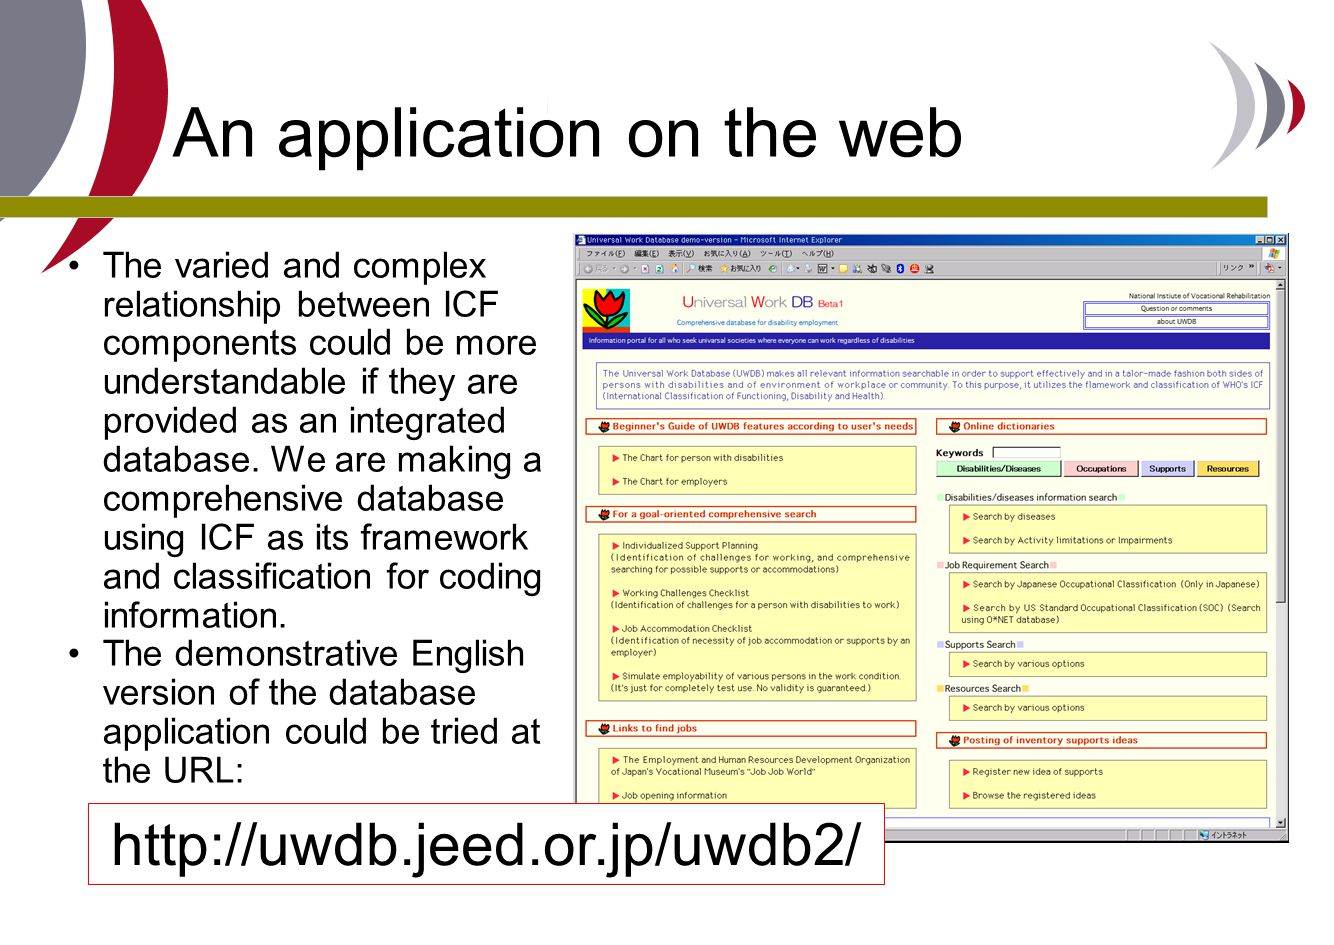 An application on the web